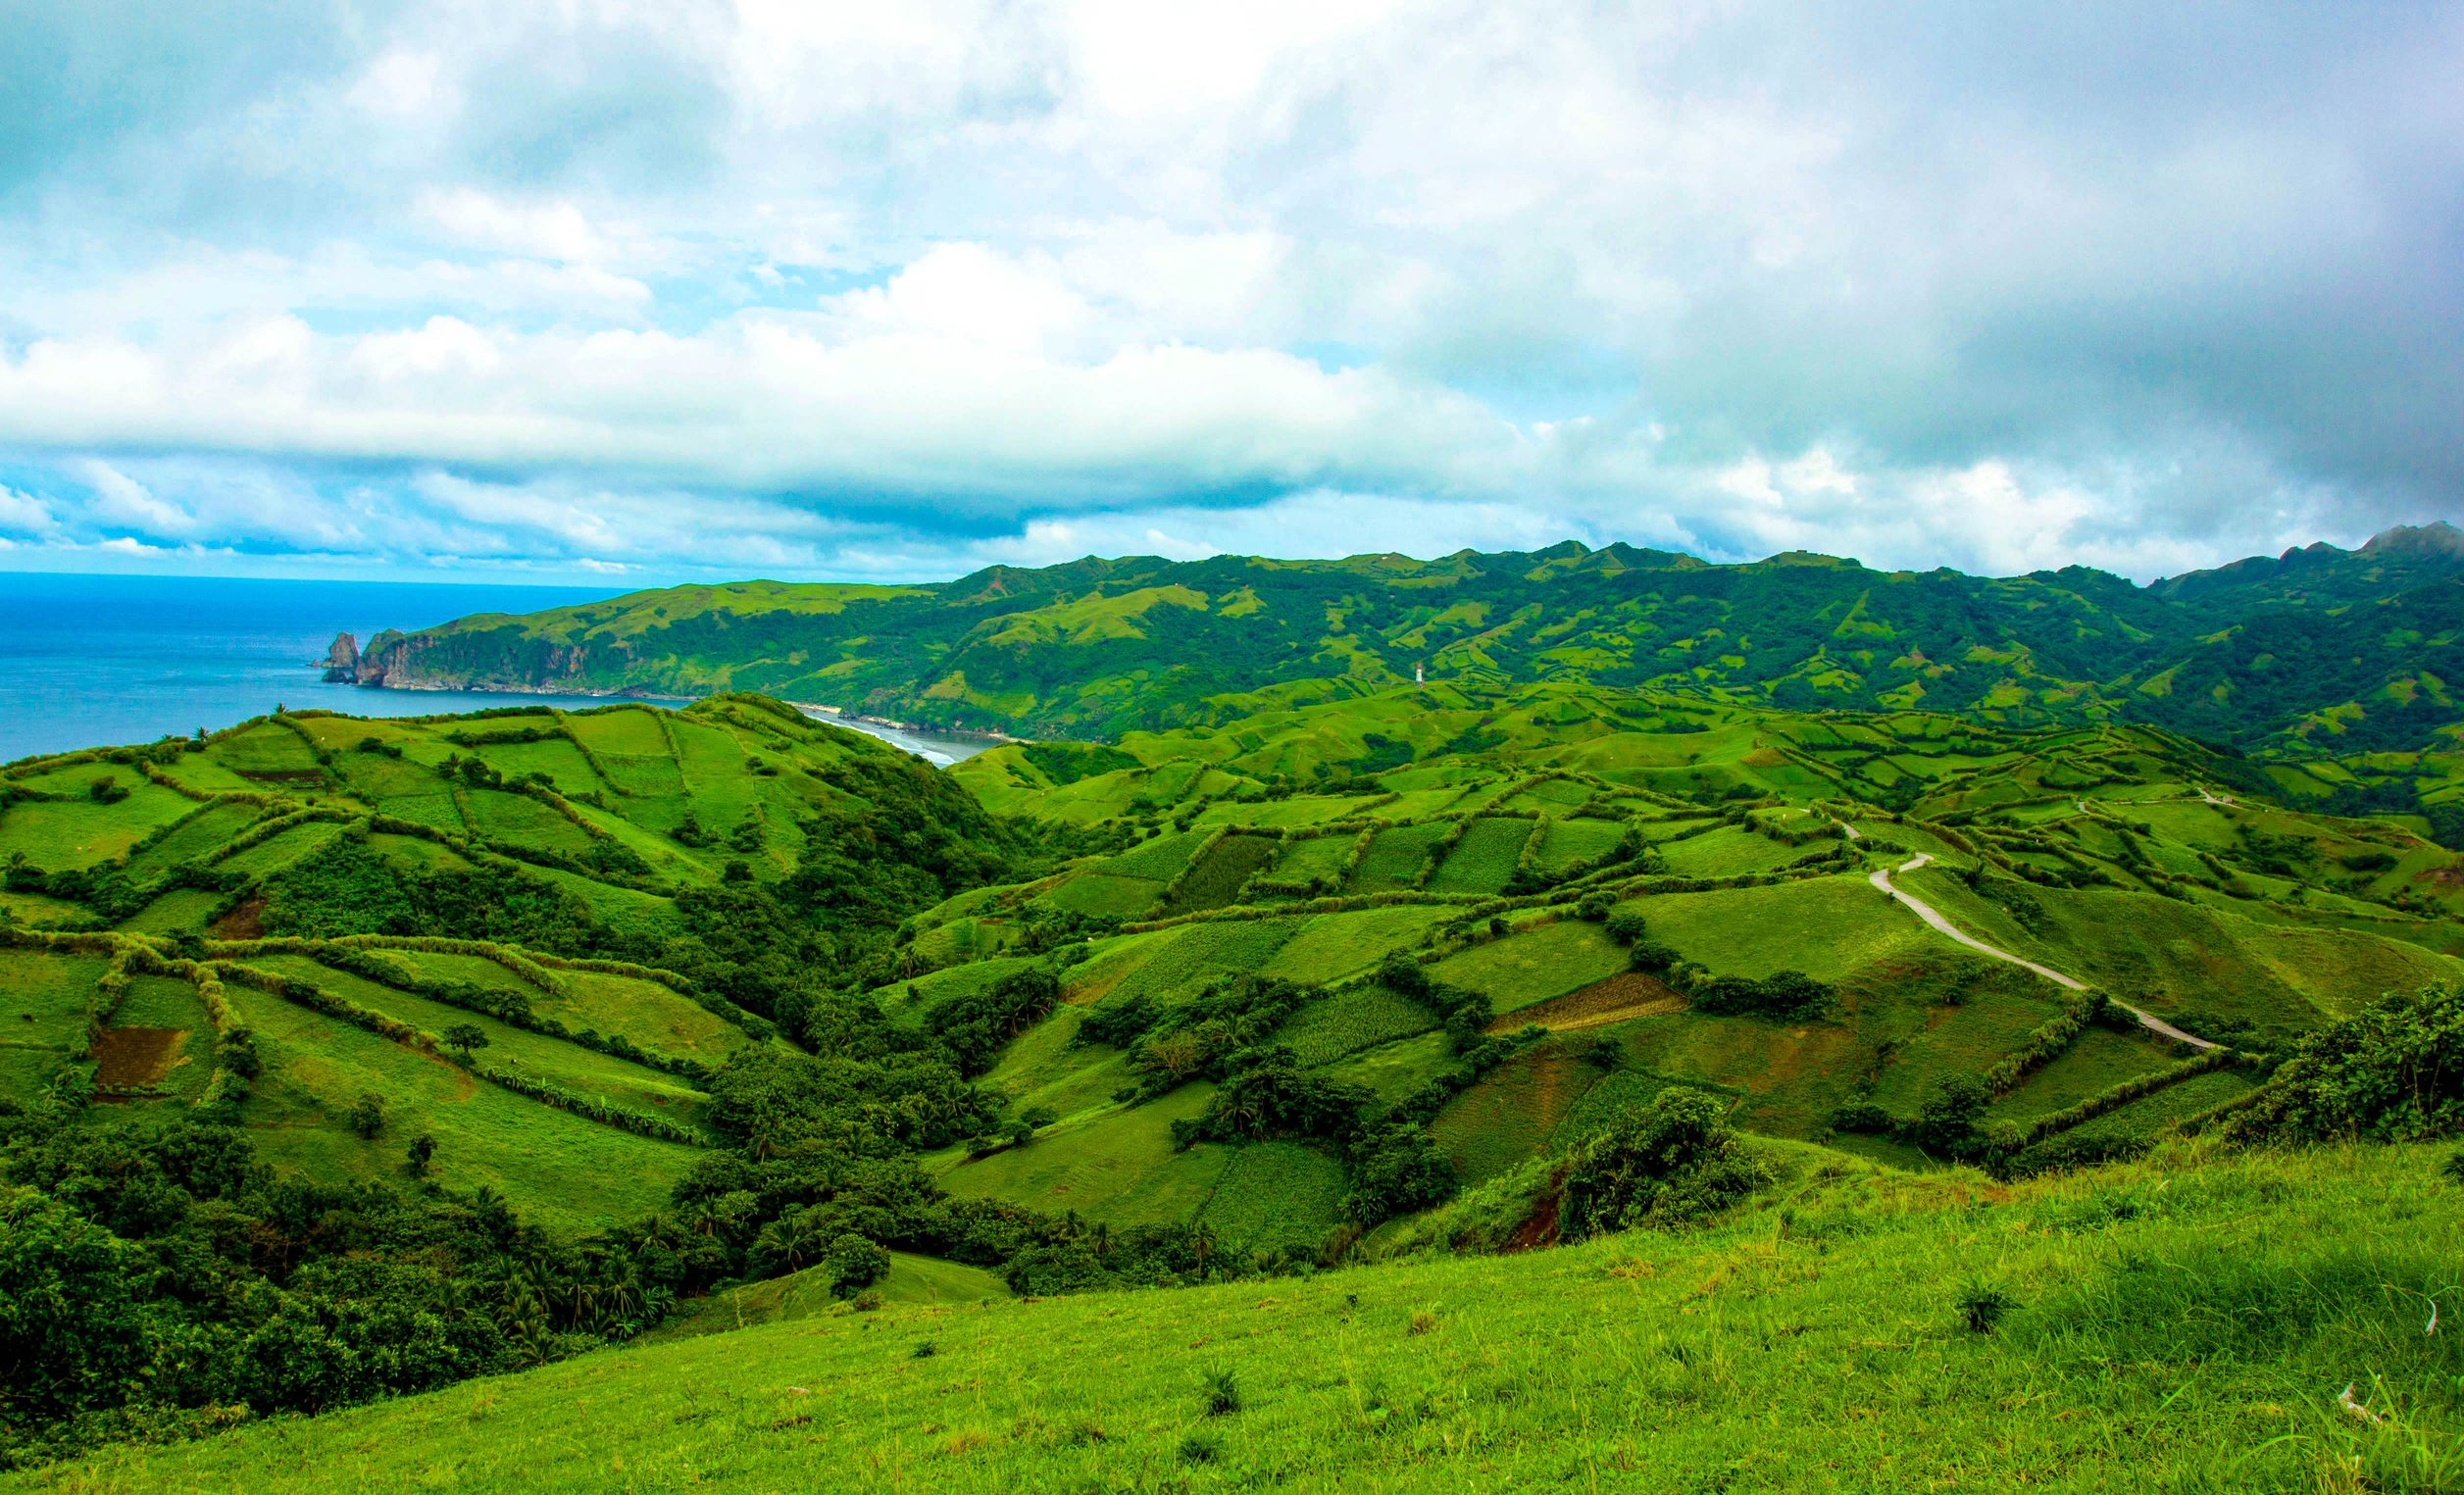 Rolling green hills beside the sea beneath a cloudy sky in Batanes, Philippines